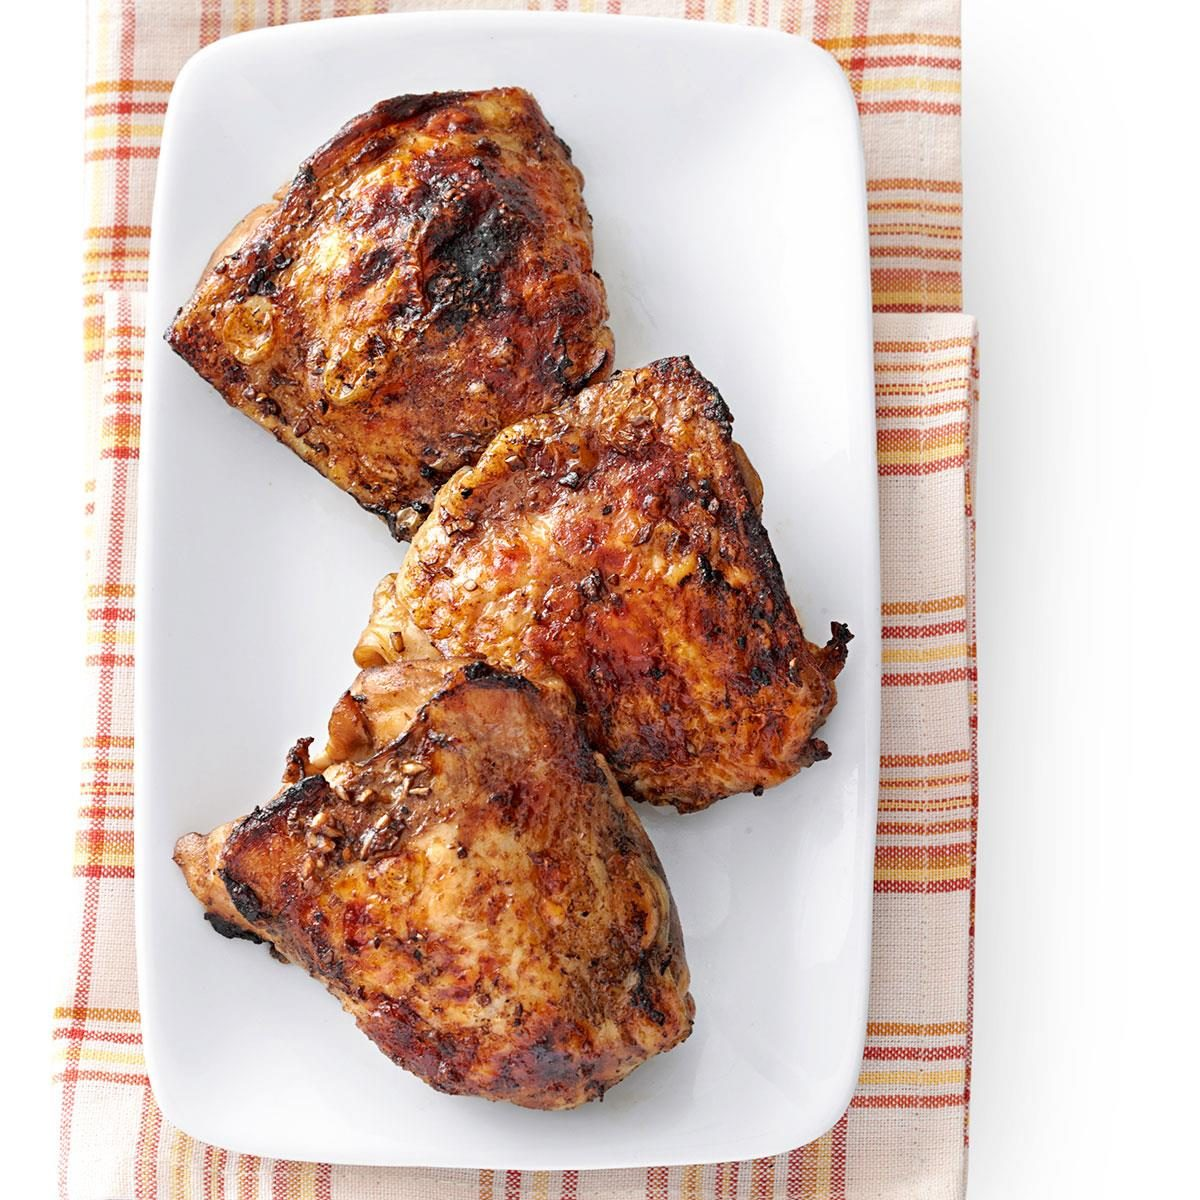 Crispy Garlic-Broiled Chicken Thighs Recipe